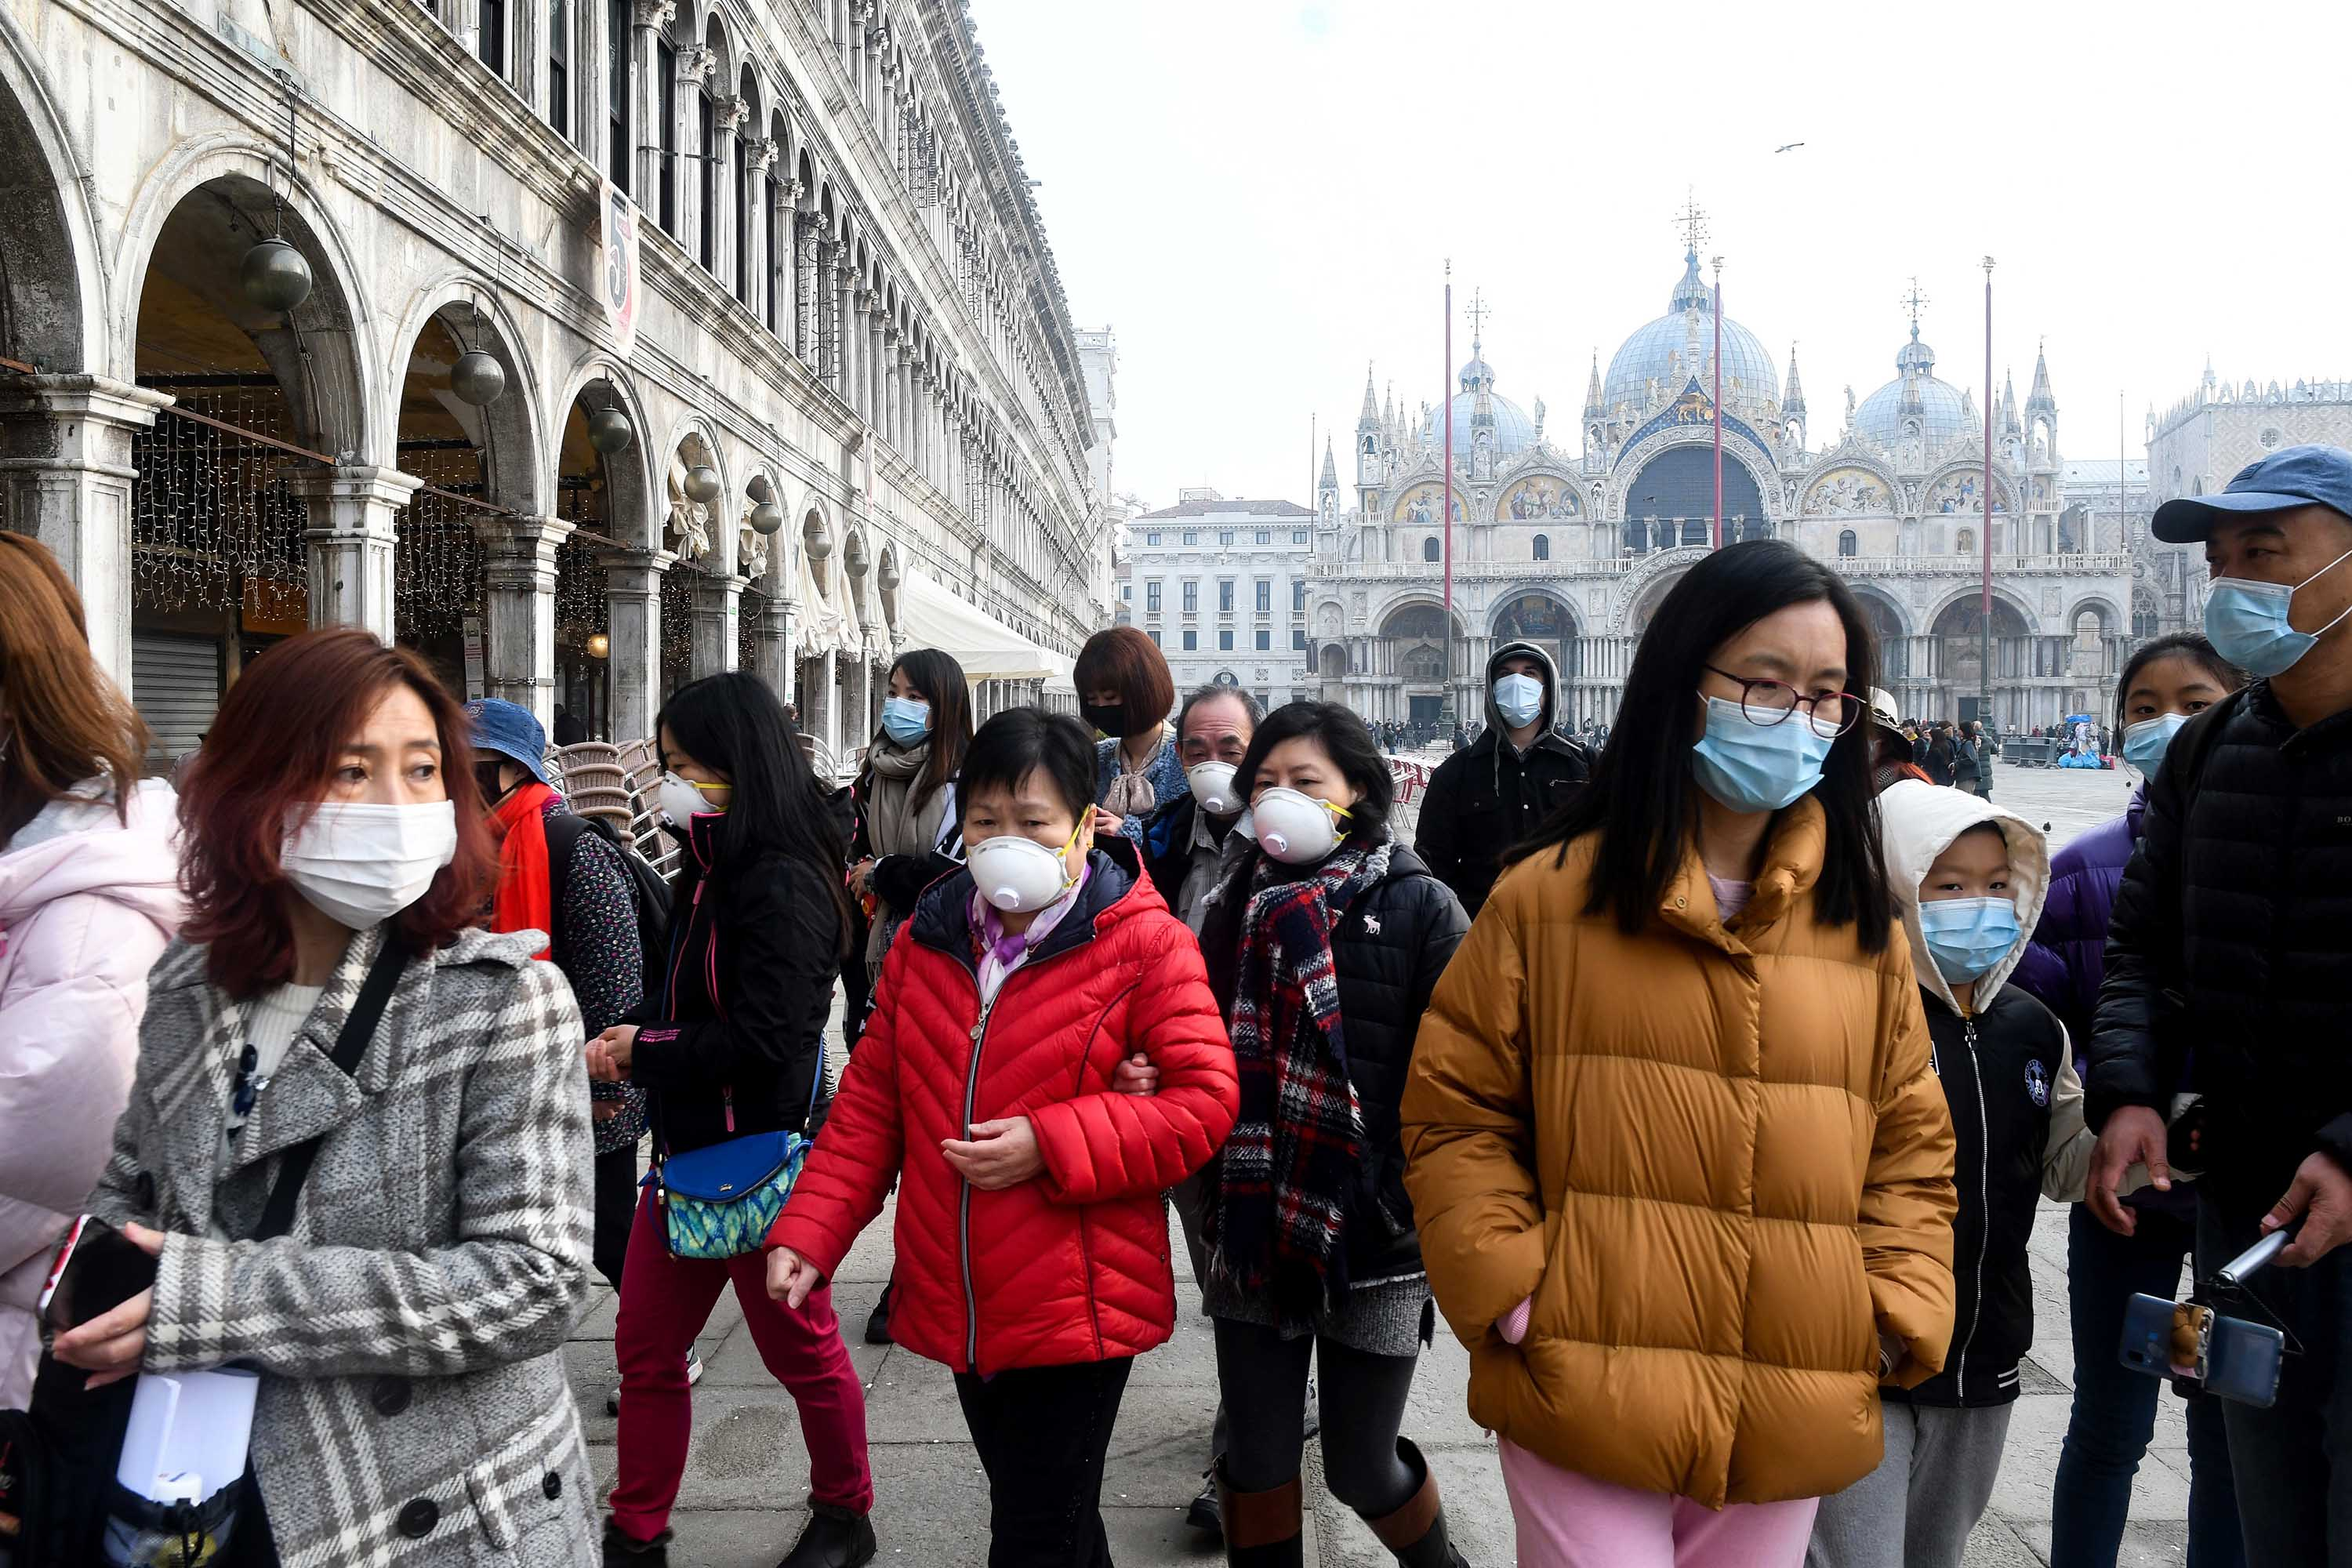 Tourists wearing protective face masks visit the Piazza San Marco in Venice, Italy on Monday.